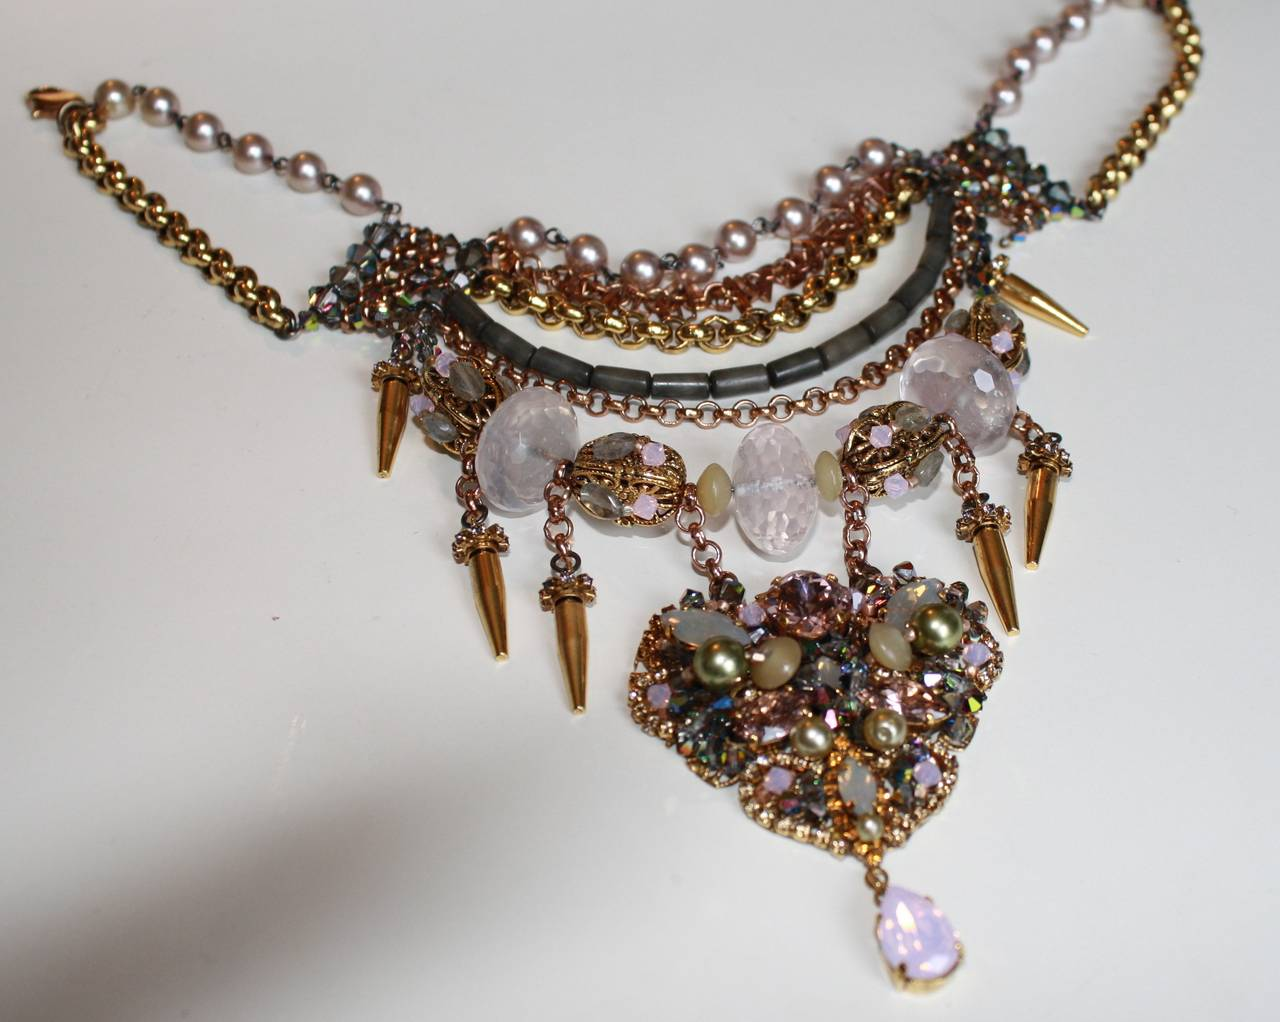 """Vintage Erickson Beamon """"Xanadu"""" necklace with rose gold chain, """"dirty"""" gold spikes, and Swarovski crystal detailing.  12.5"""" width with 3"""" extra chain  3.5"""" drop  Designer Biography:  Founded and designed by Detroit natives Karen & Eric"""